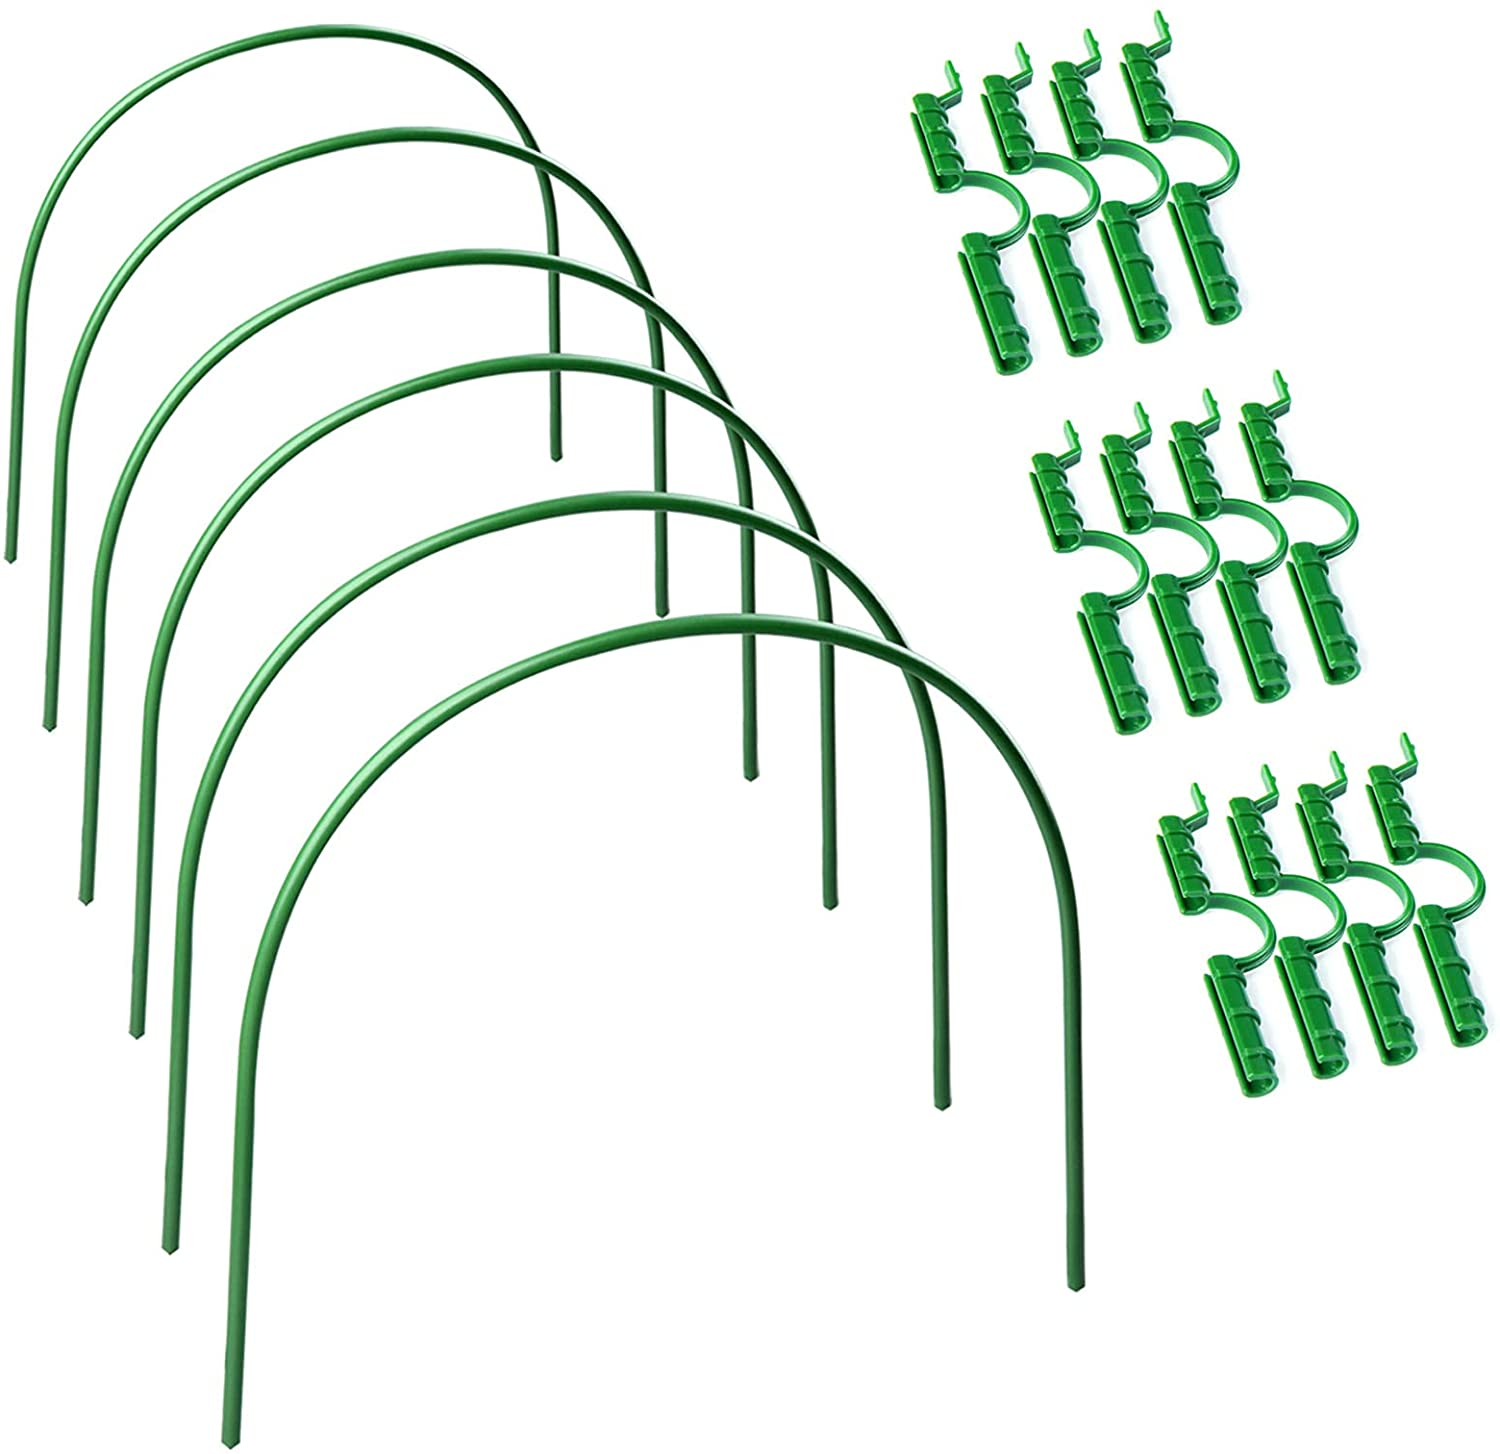 æ— 6-Pack Greenhouse Hoops with 12 Pack Greenhouse Clamps for Netting,Plastic